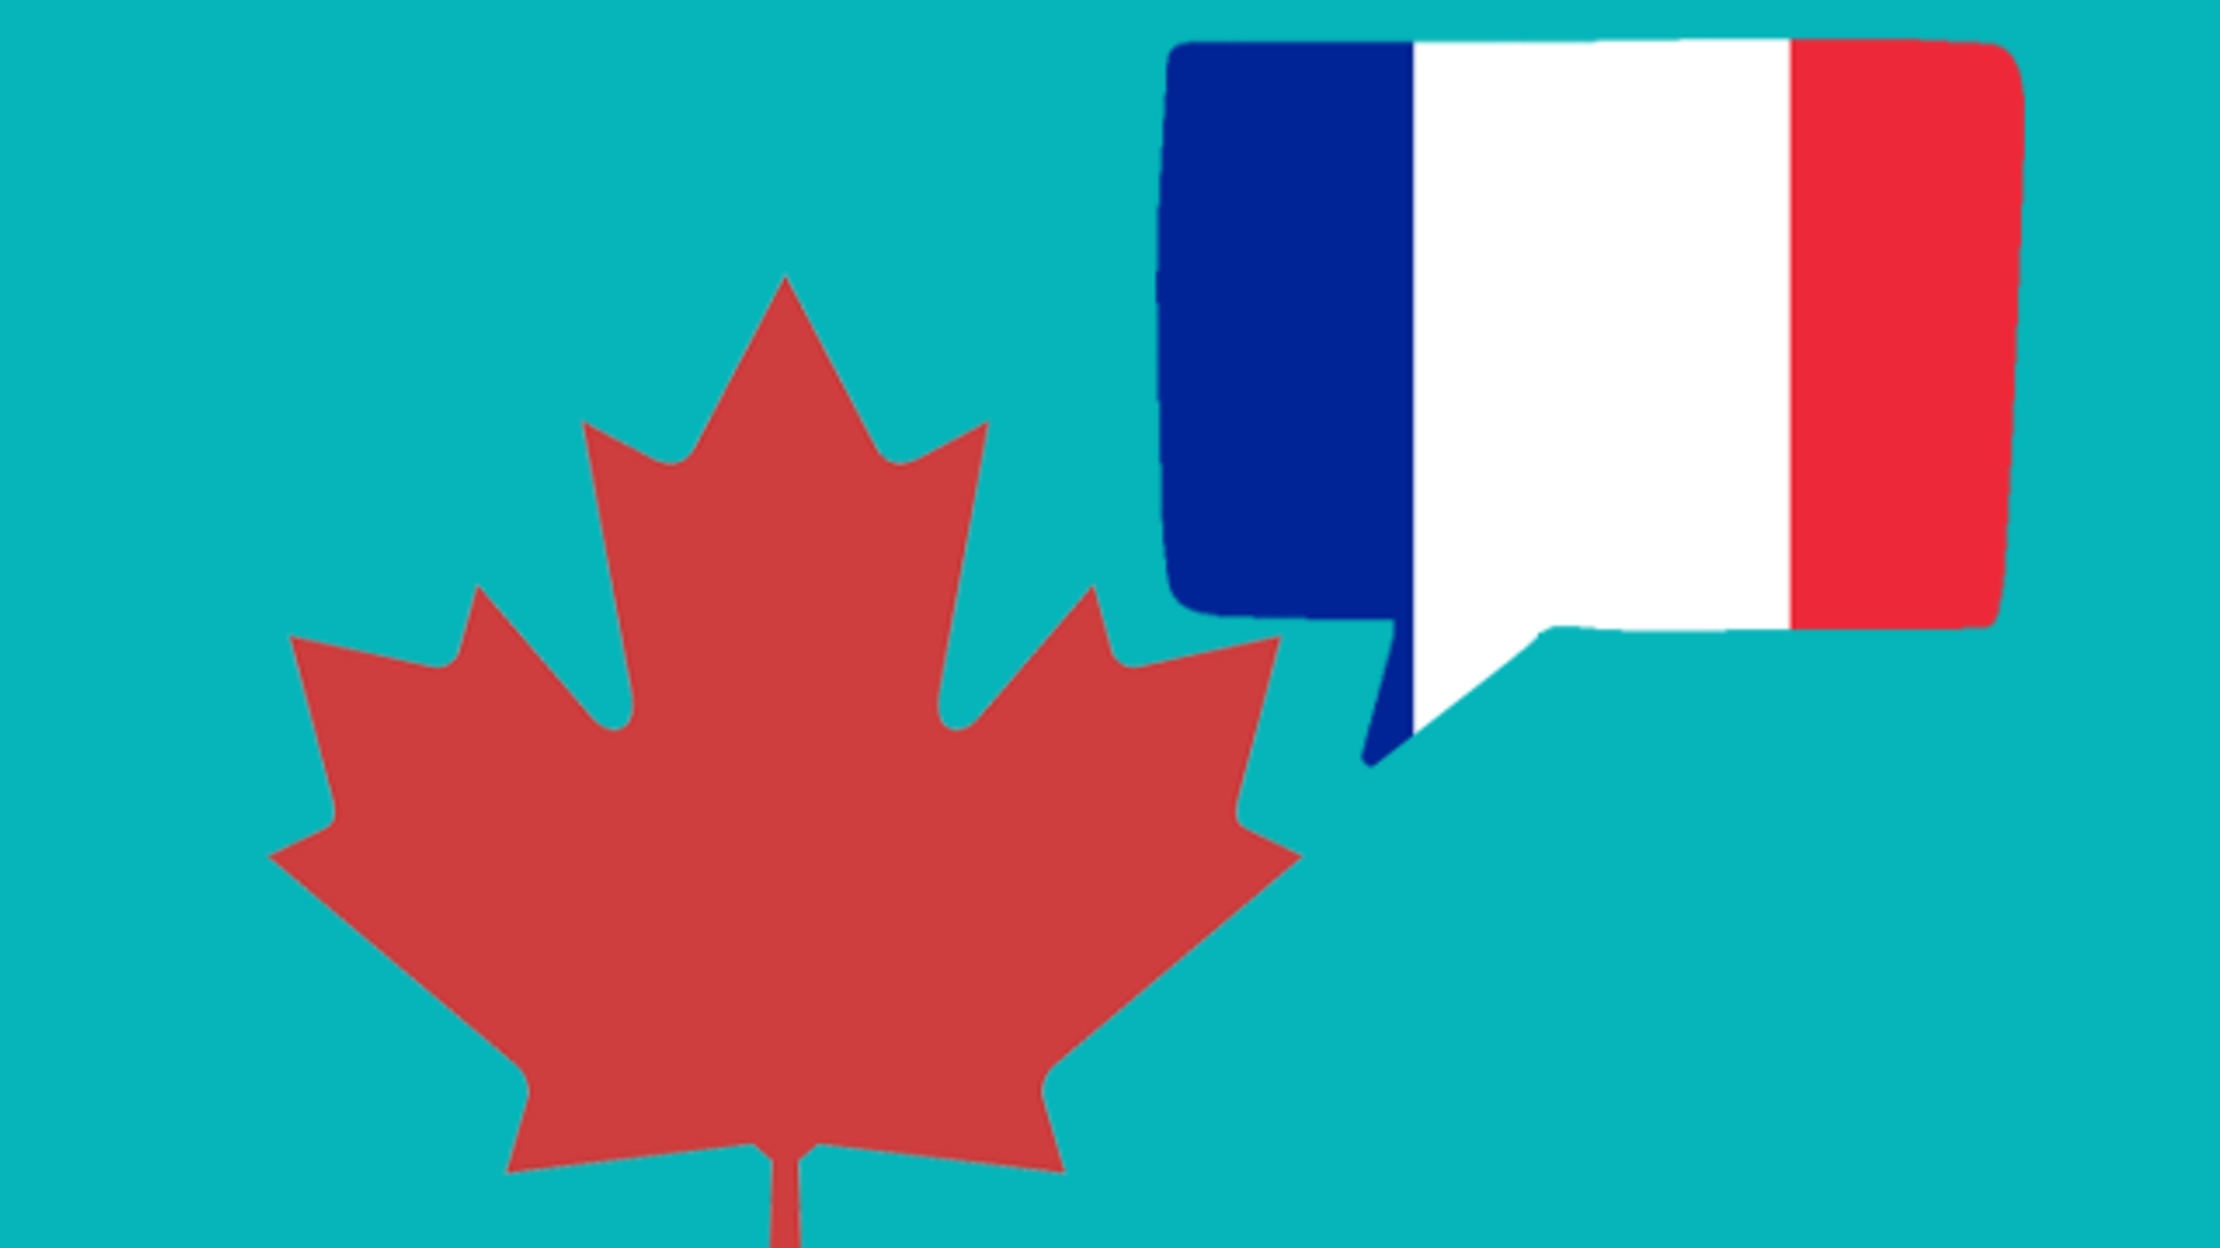 7 Très Interesting Facts about Canadian French | Mental Floss